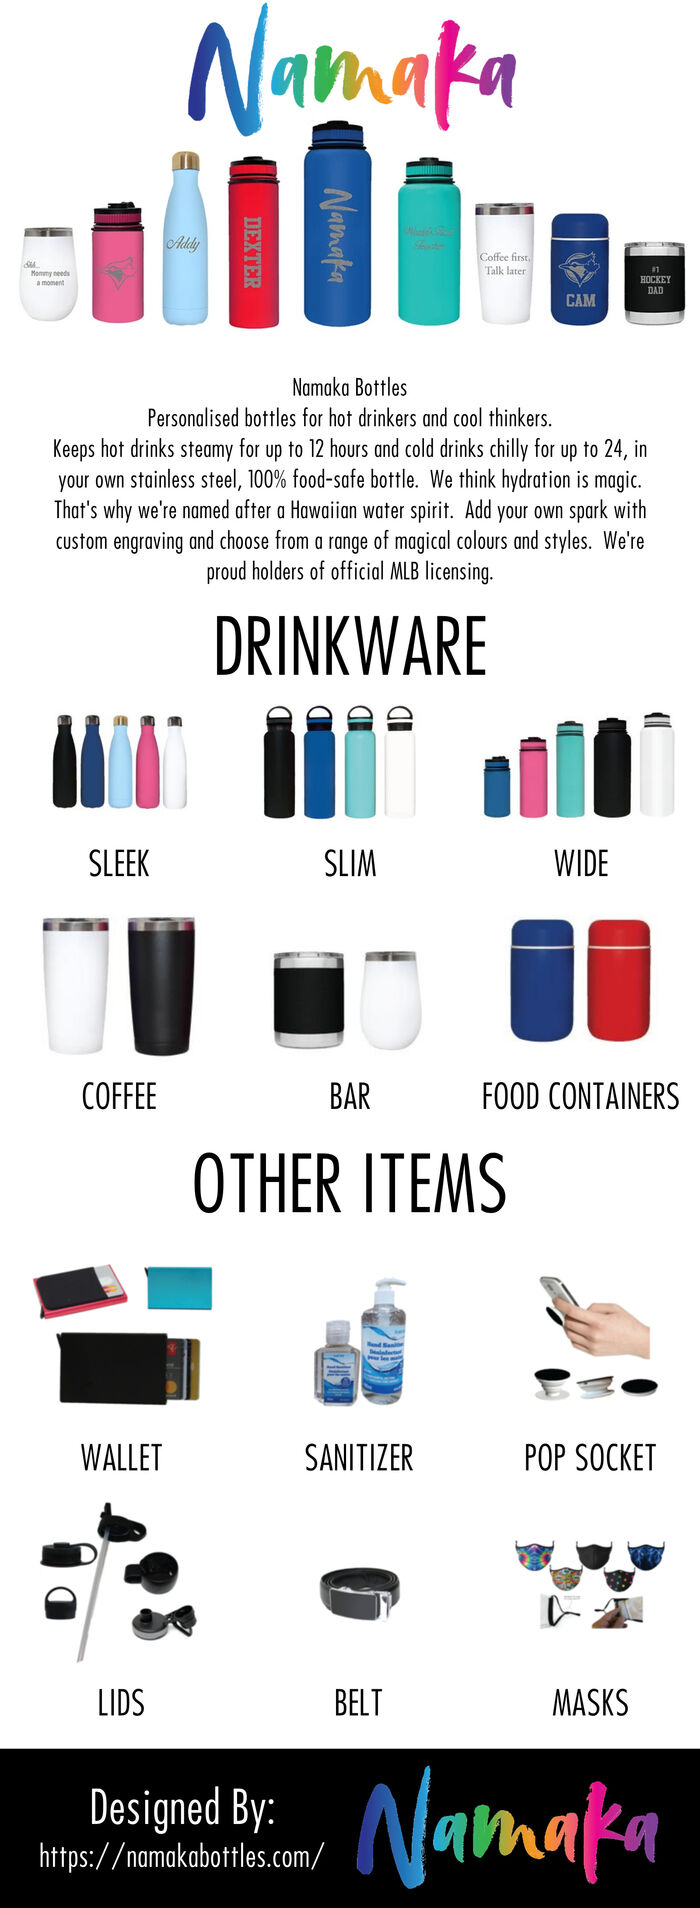 This infographic is designed by Namaka Water Bottles